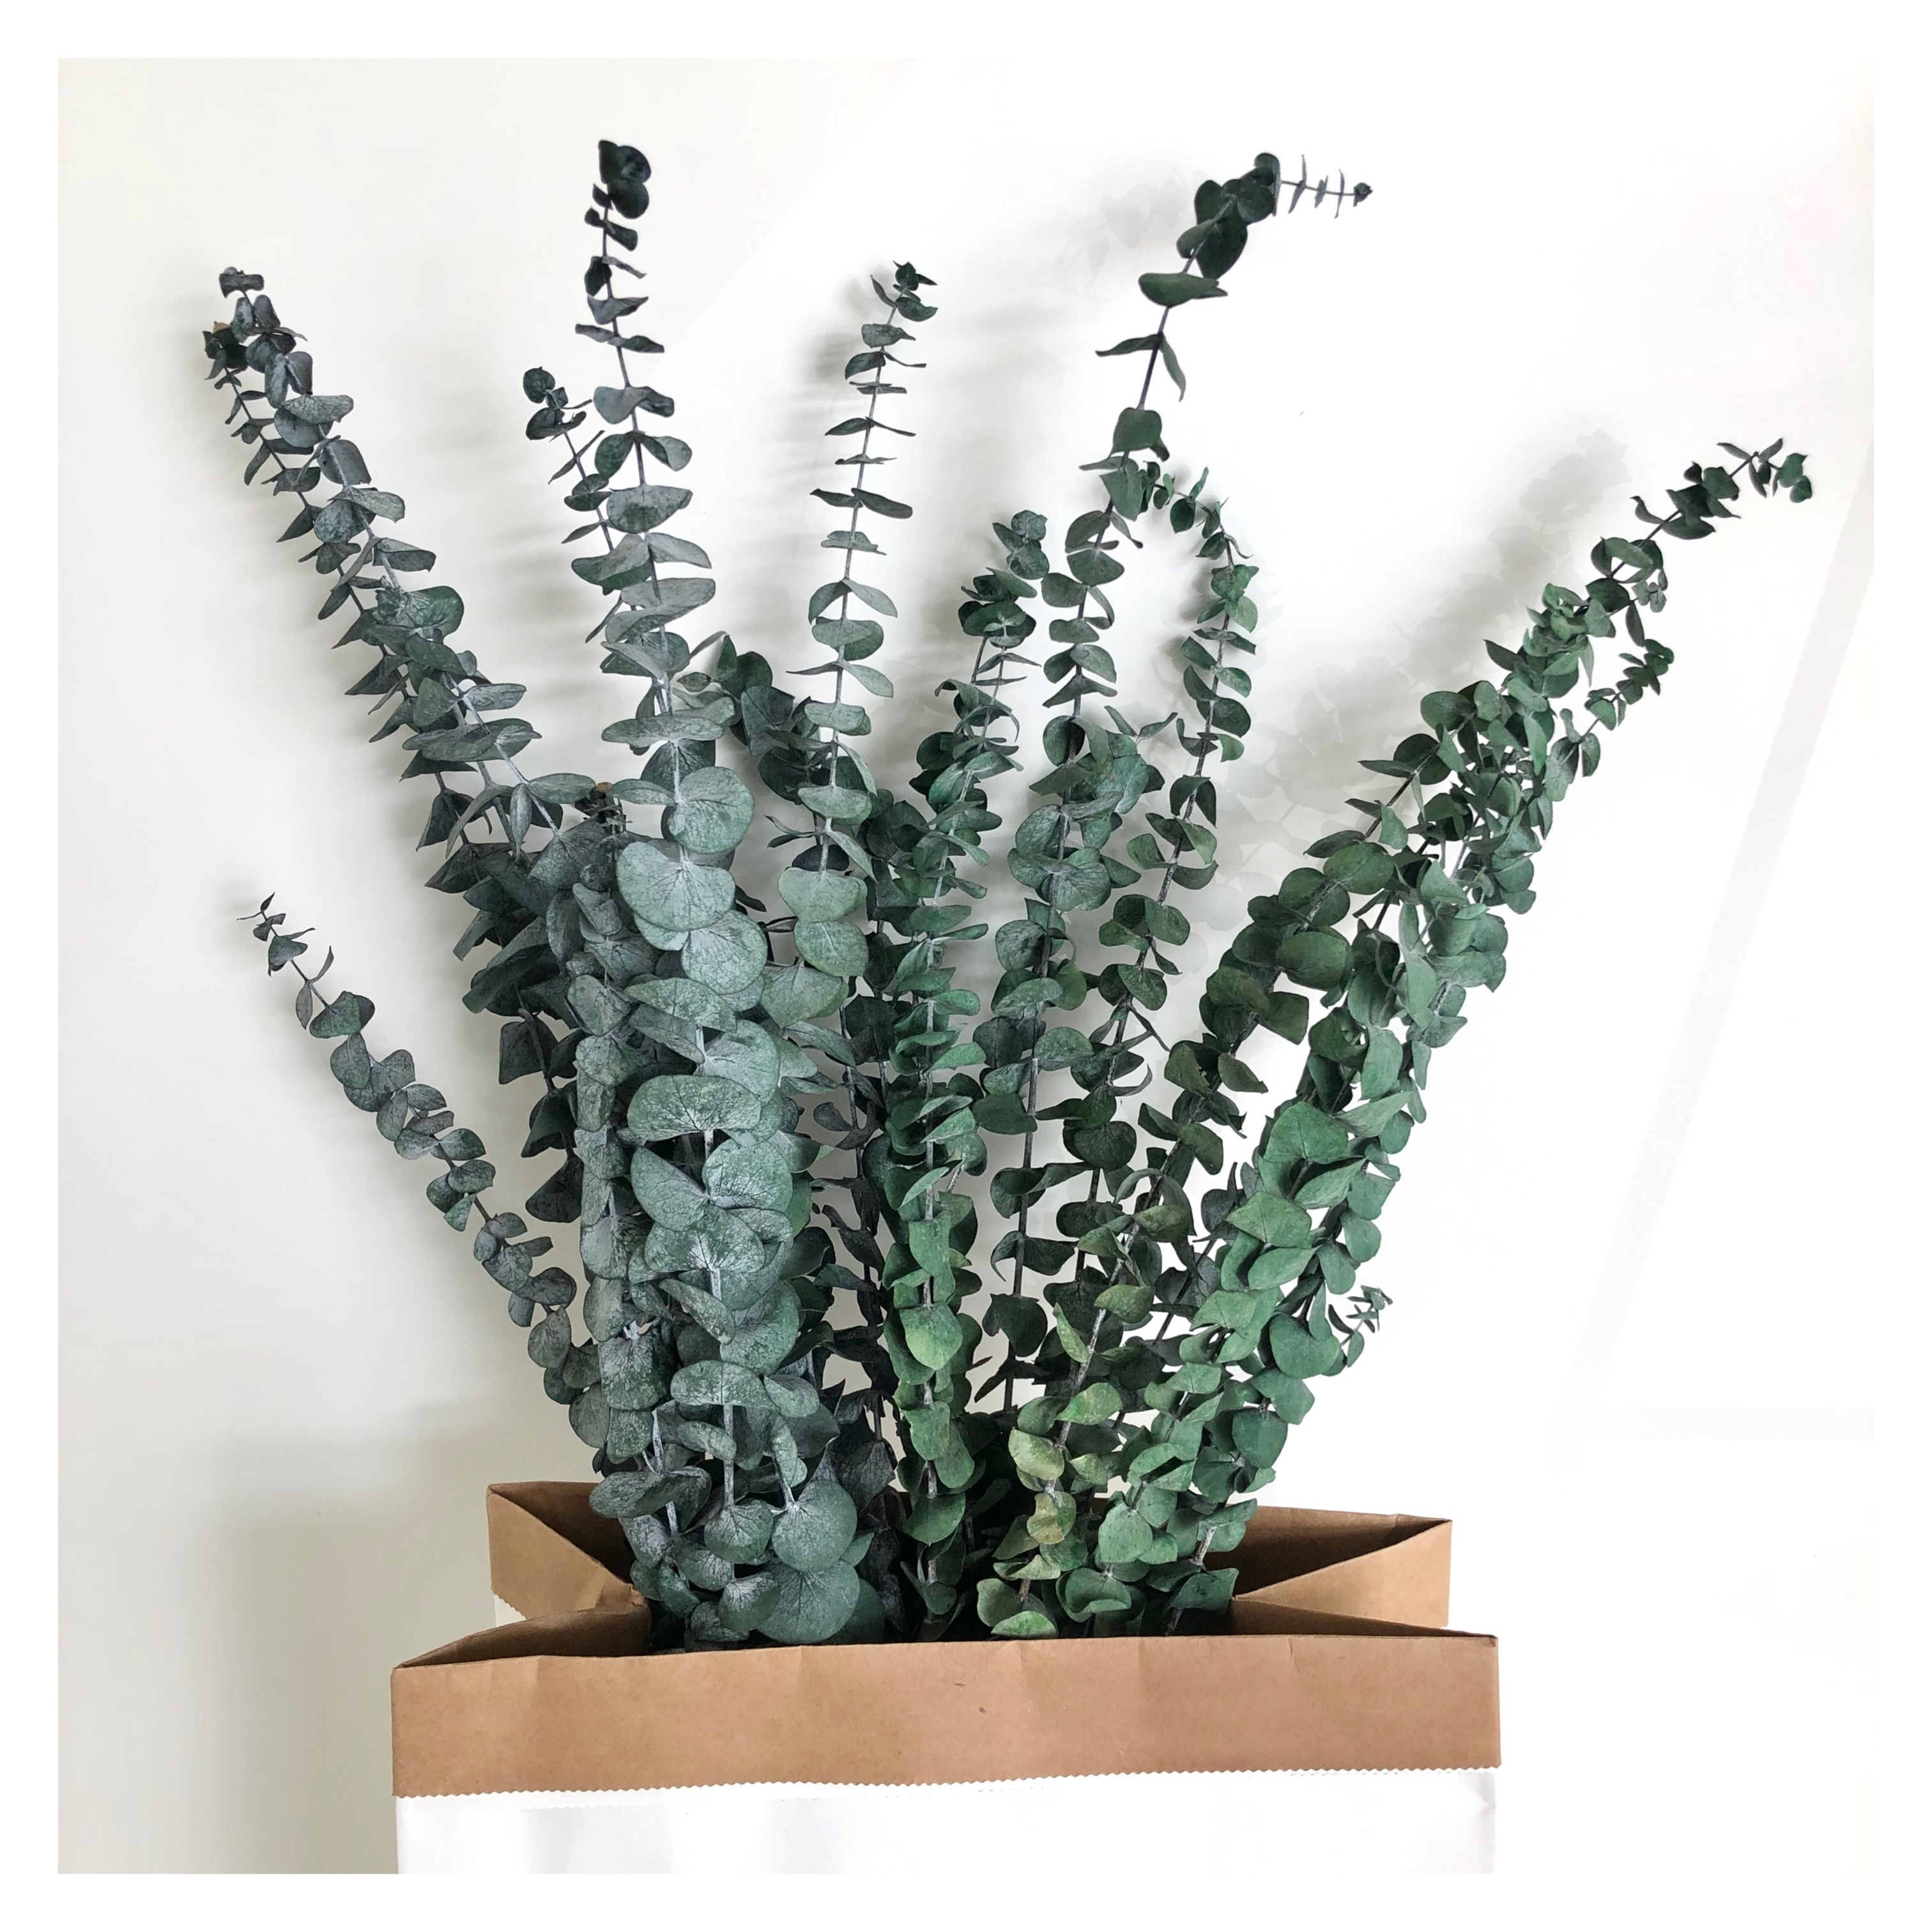 2021 New Hot Sale Dried Eucalyptus Leaves For Wedding Decoration - Buy  Eucalyptus Leaves,Dried Eucalyptus Leaves,Preserved Frosted Natural  Eucalyptus Leaves Branch Product on Alibaba.com